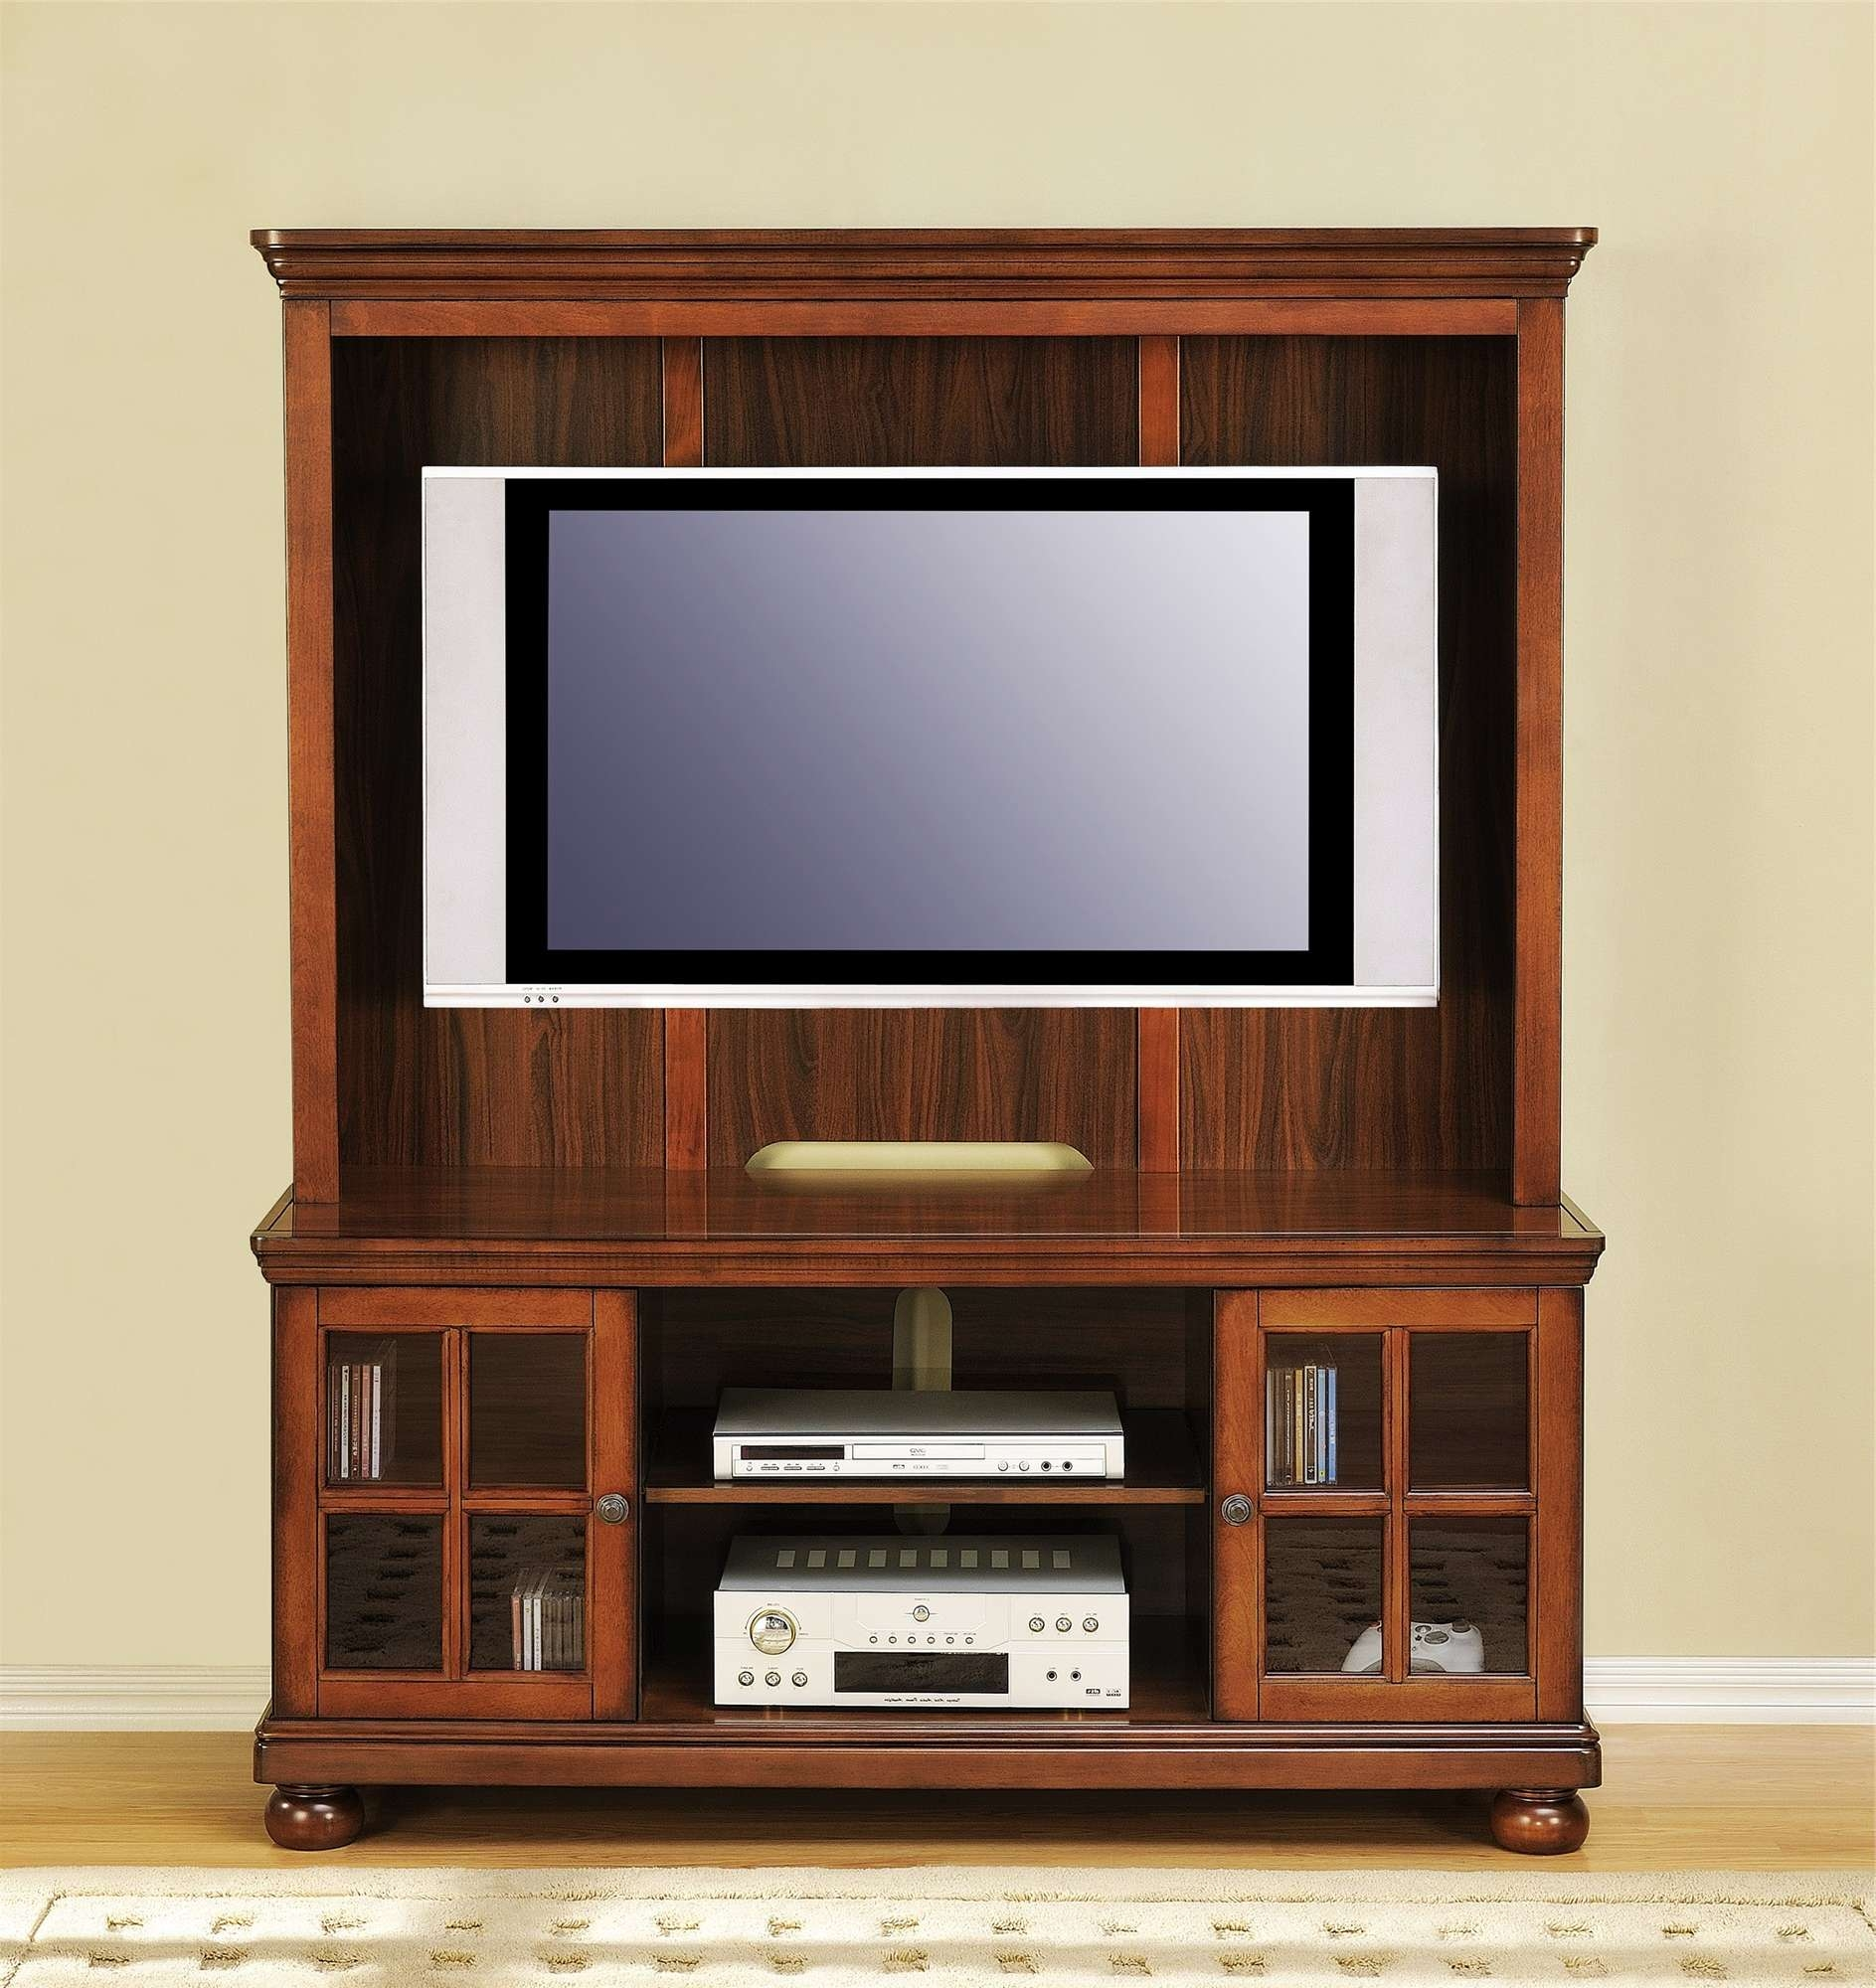 Dark Brown Wooden Tv Cabinet With Door On The Floor Connected Pertaining To Enclosed Tv Cabinets For Flat Screens With Doors (View 3 of 20)